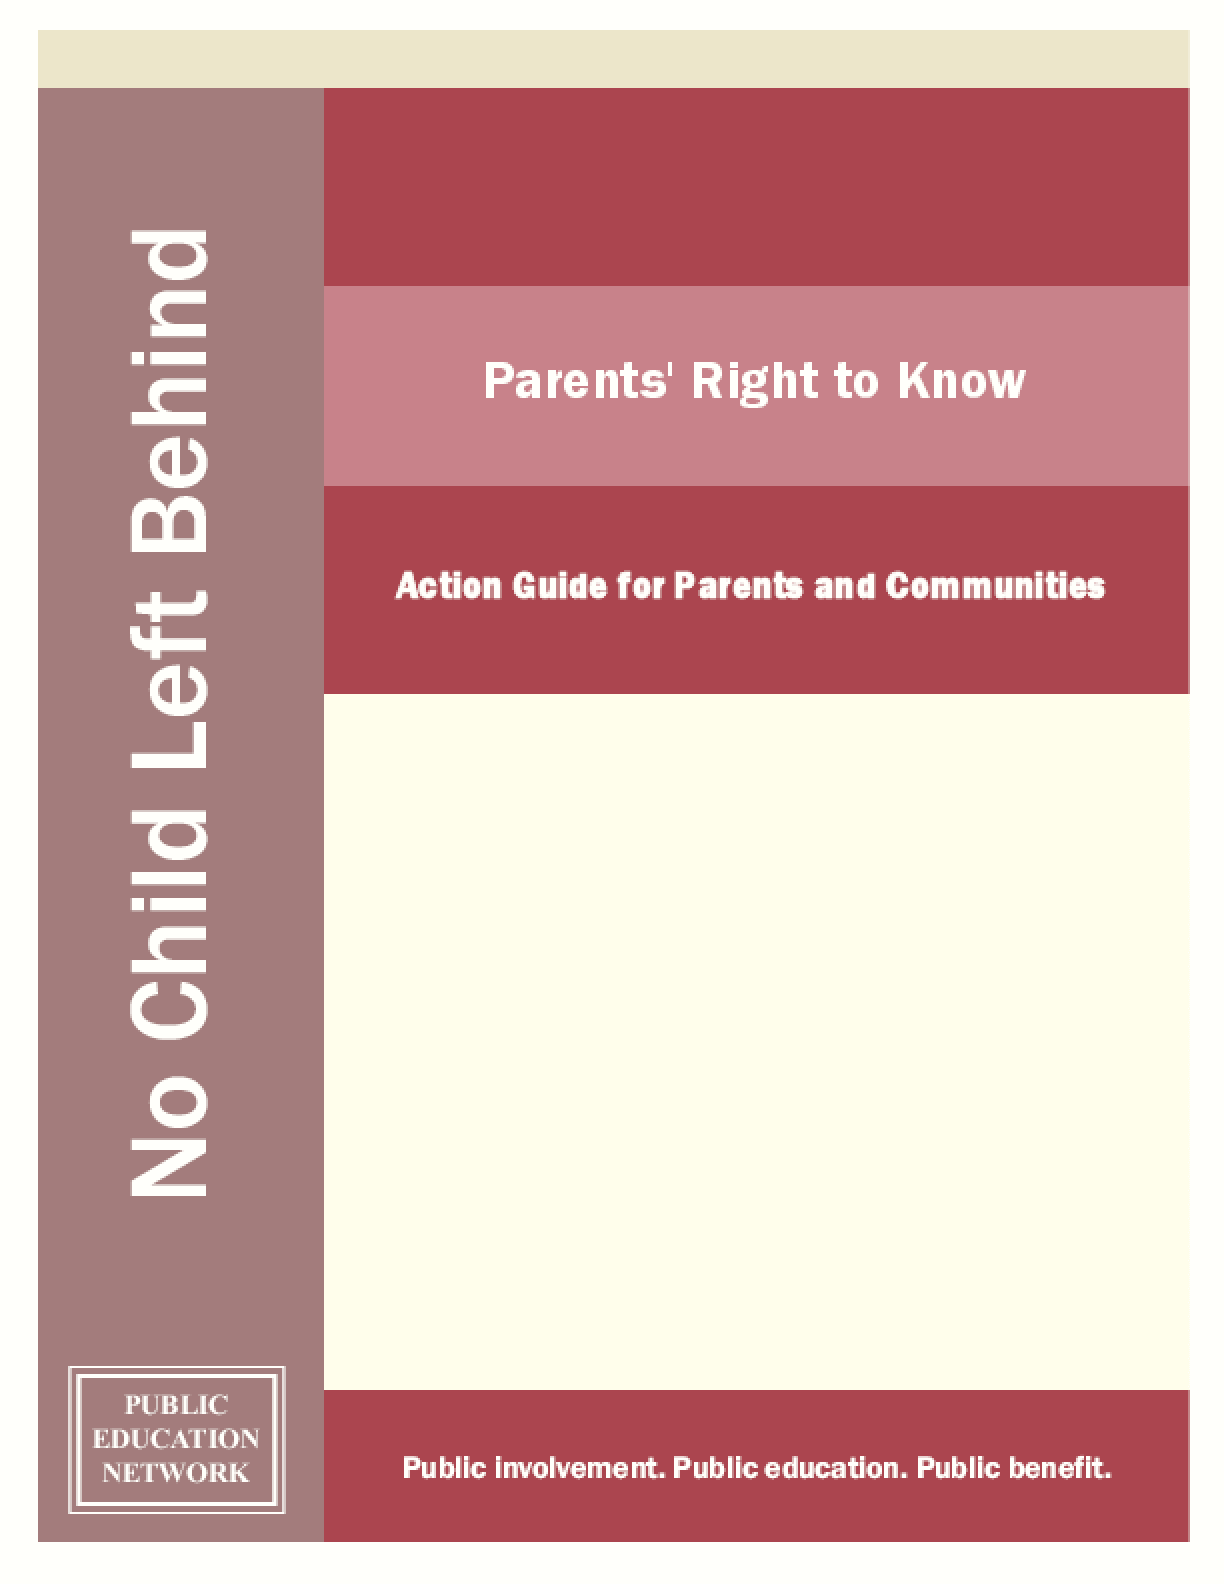 Parents' Right to Know: Action Guide for Parents and Communities